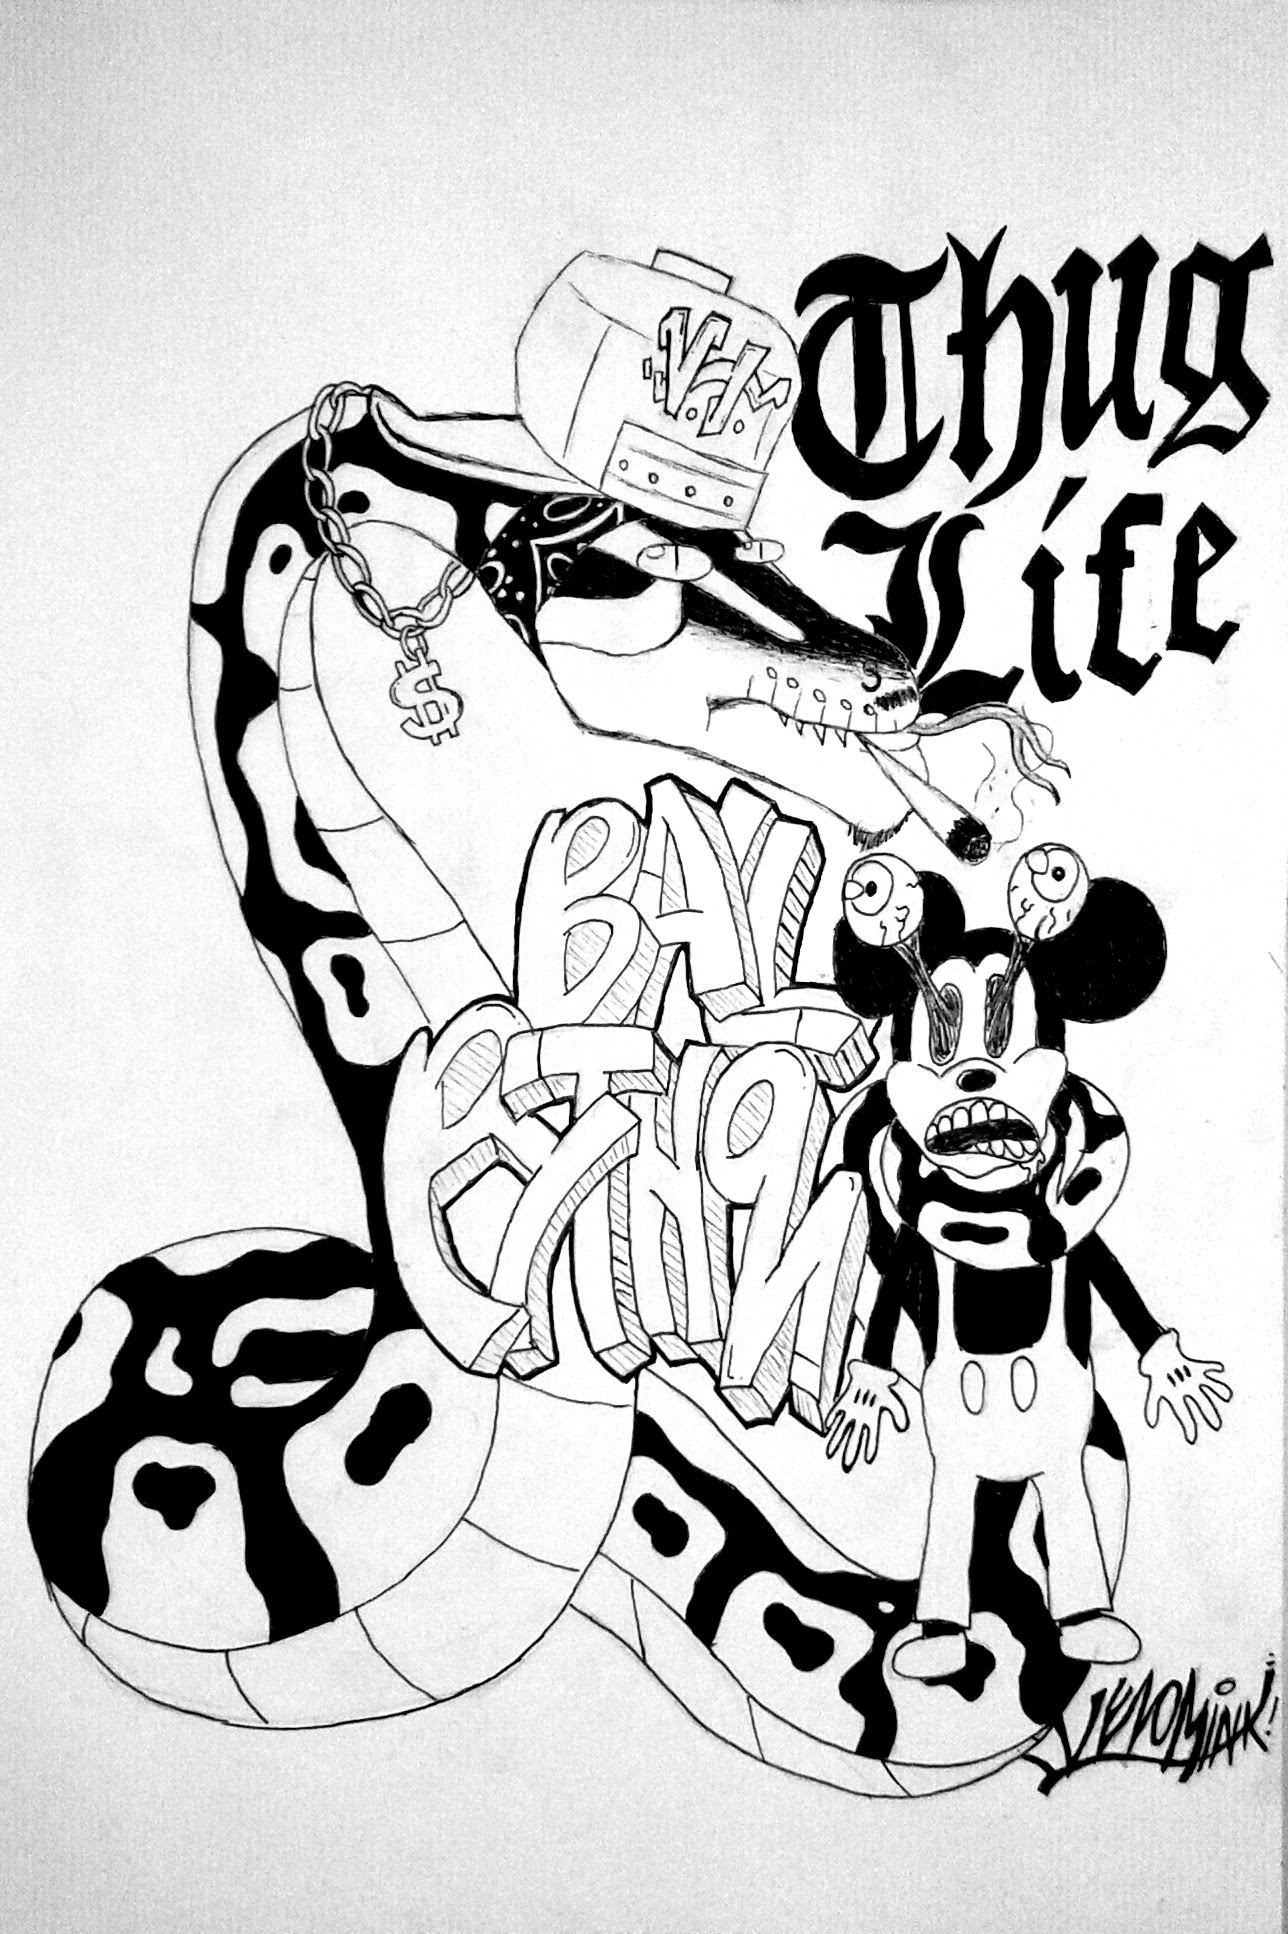 1288x1934 Cartoon Thug Drawings Thug Life Ball Python Graffiti Style Speed